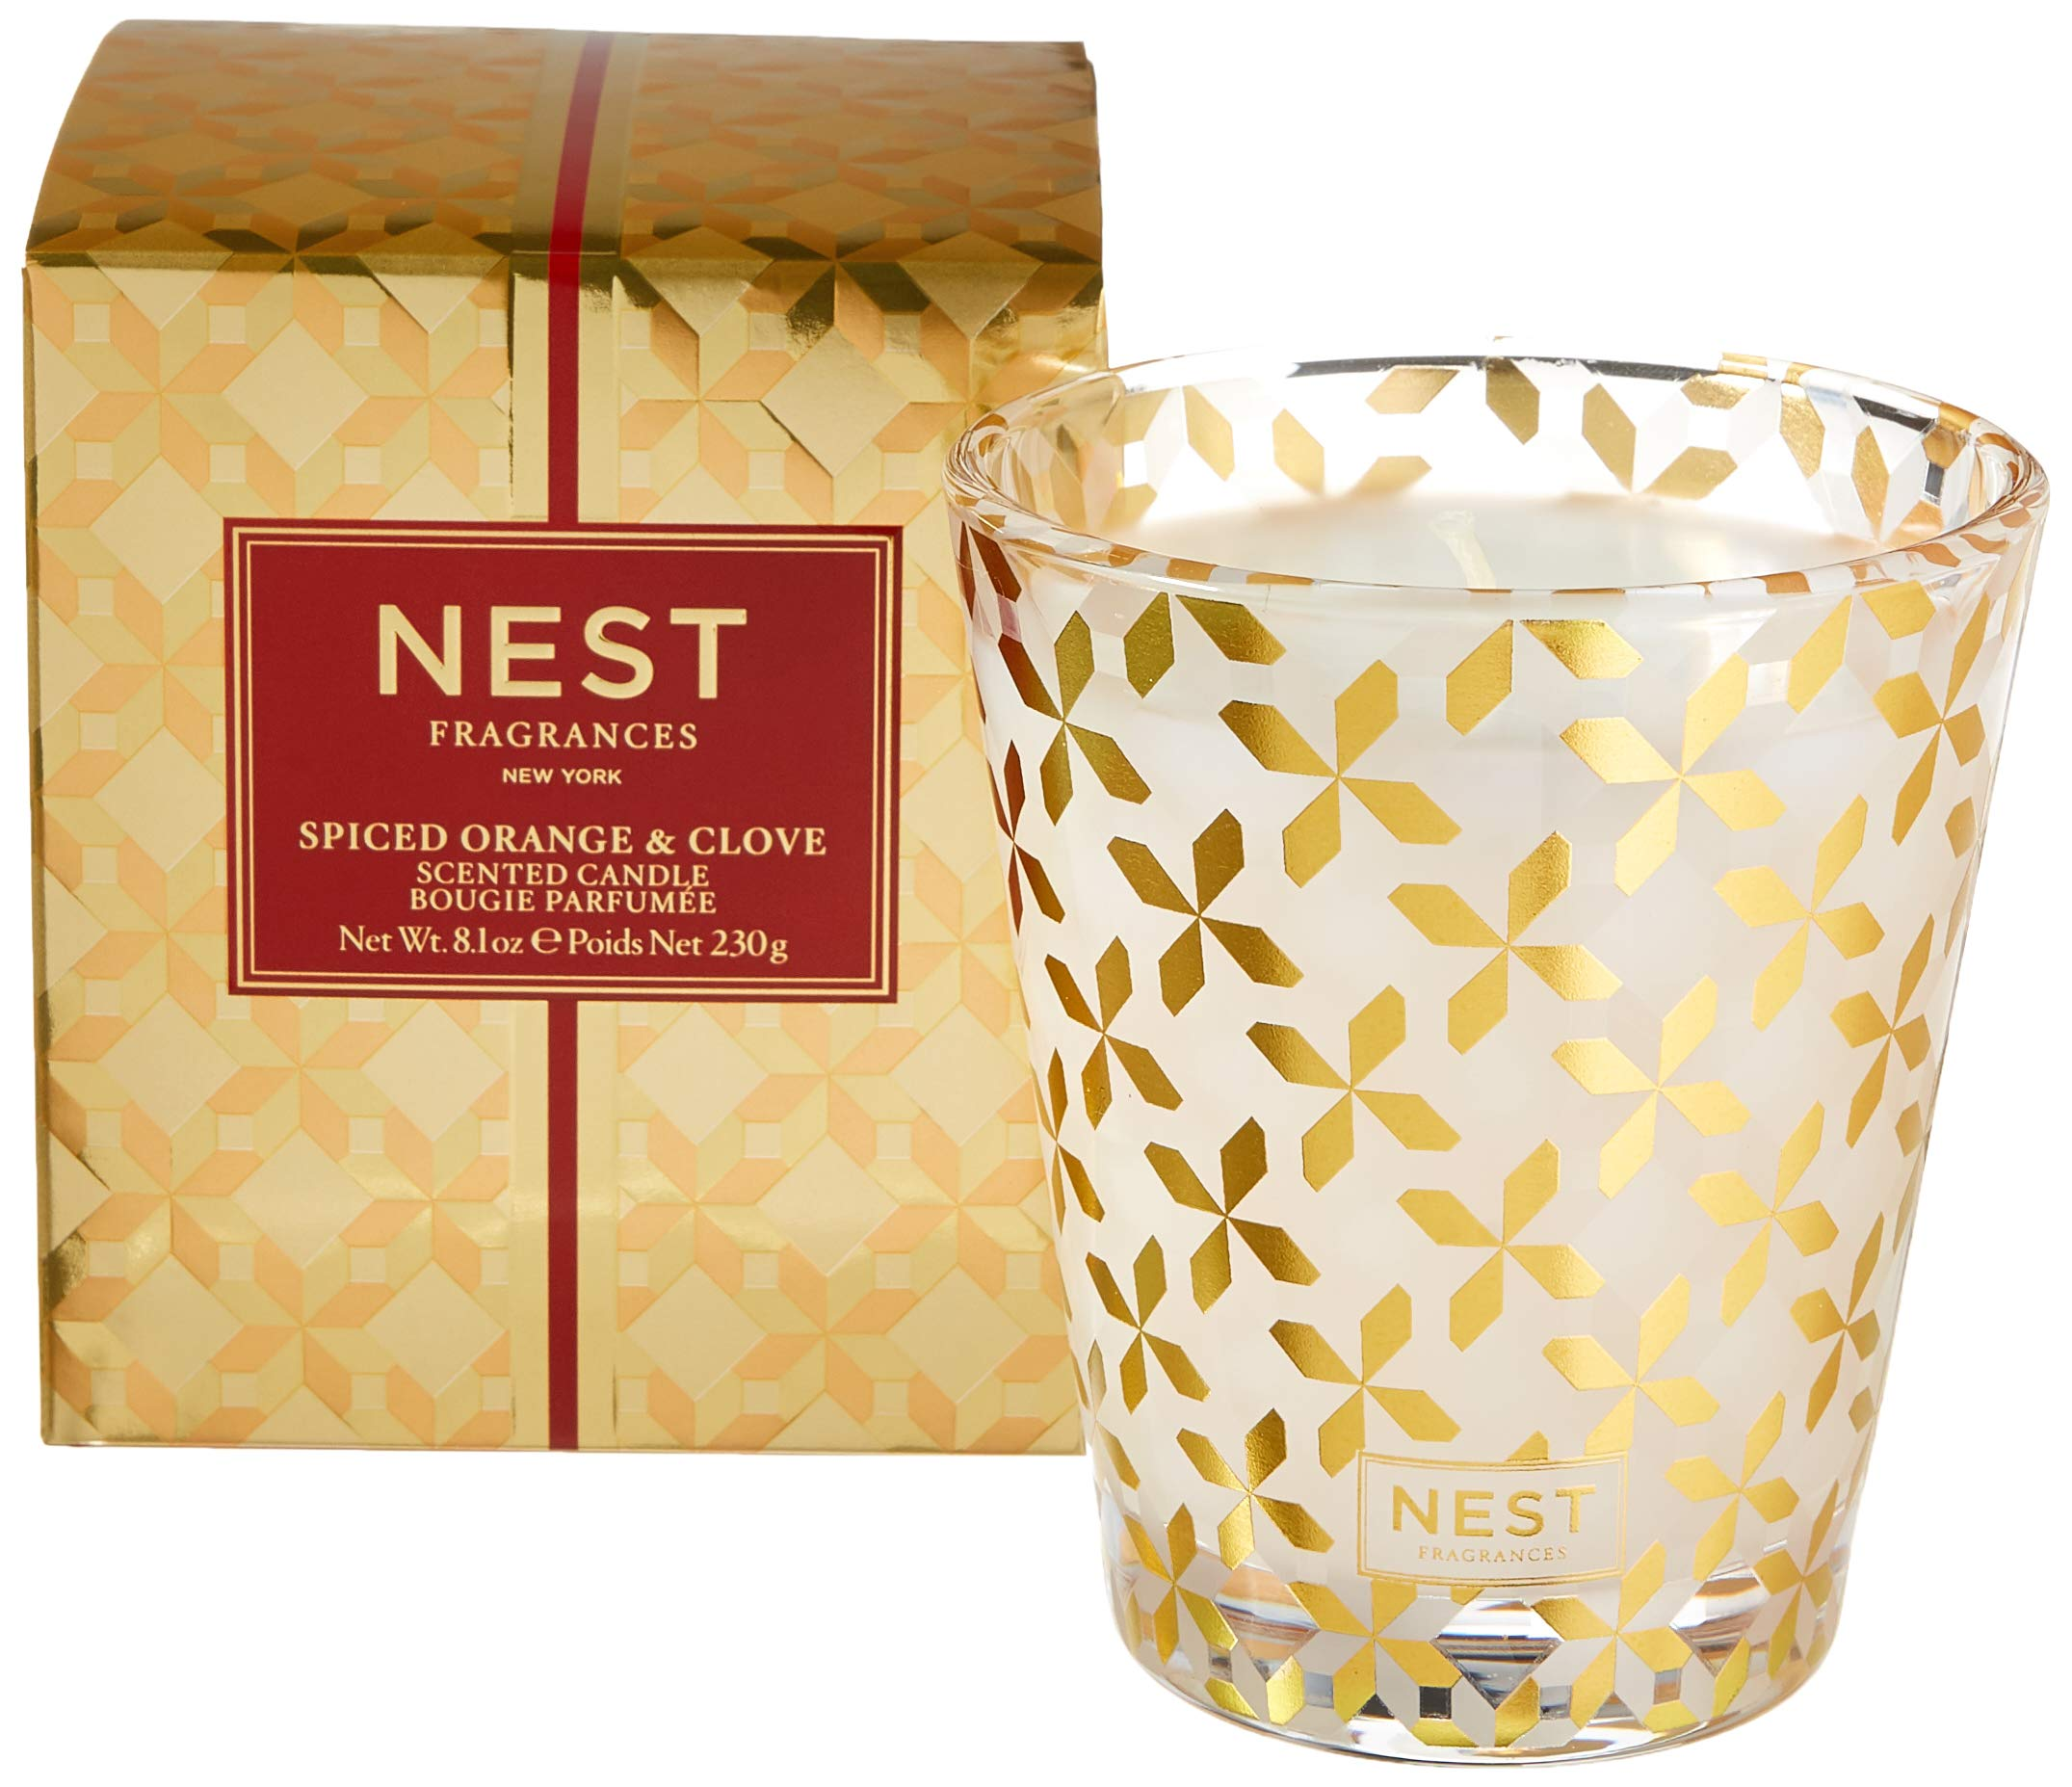 NEST Fragrances Spiced Orange & Clove Classic Candle by NEST Fragrances